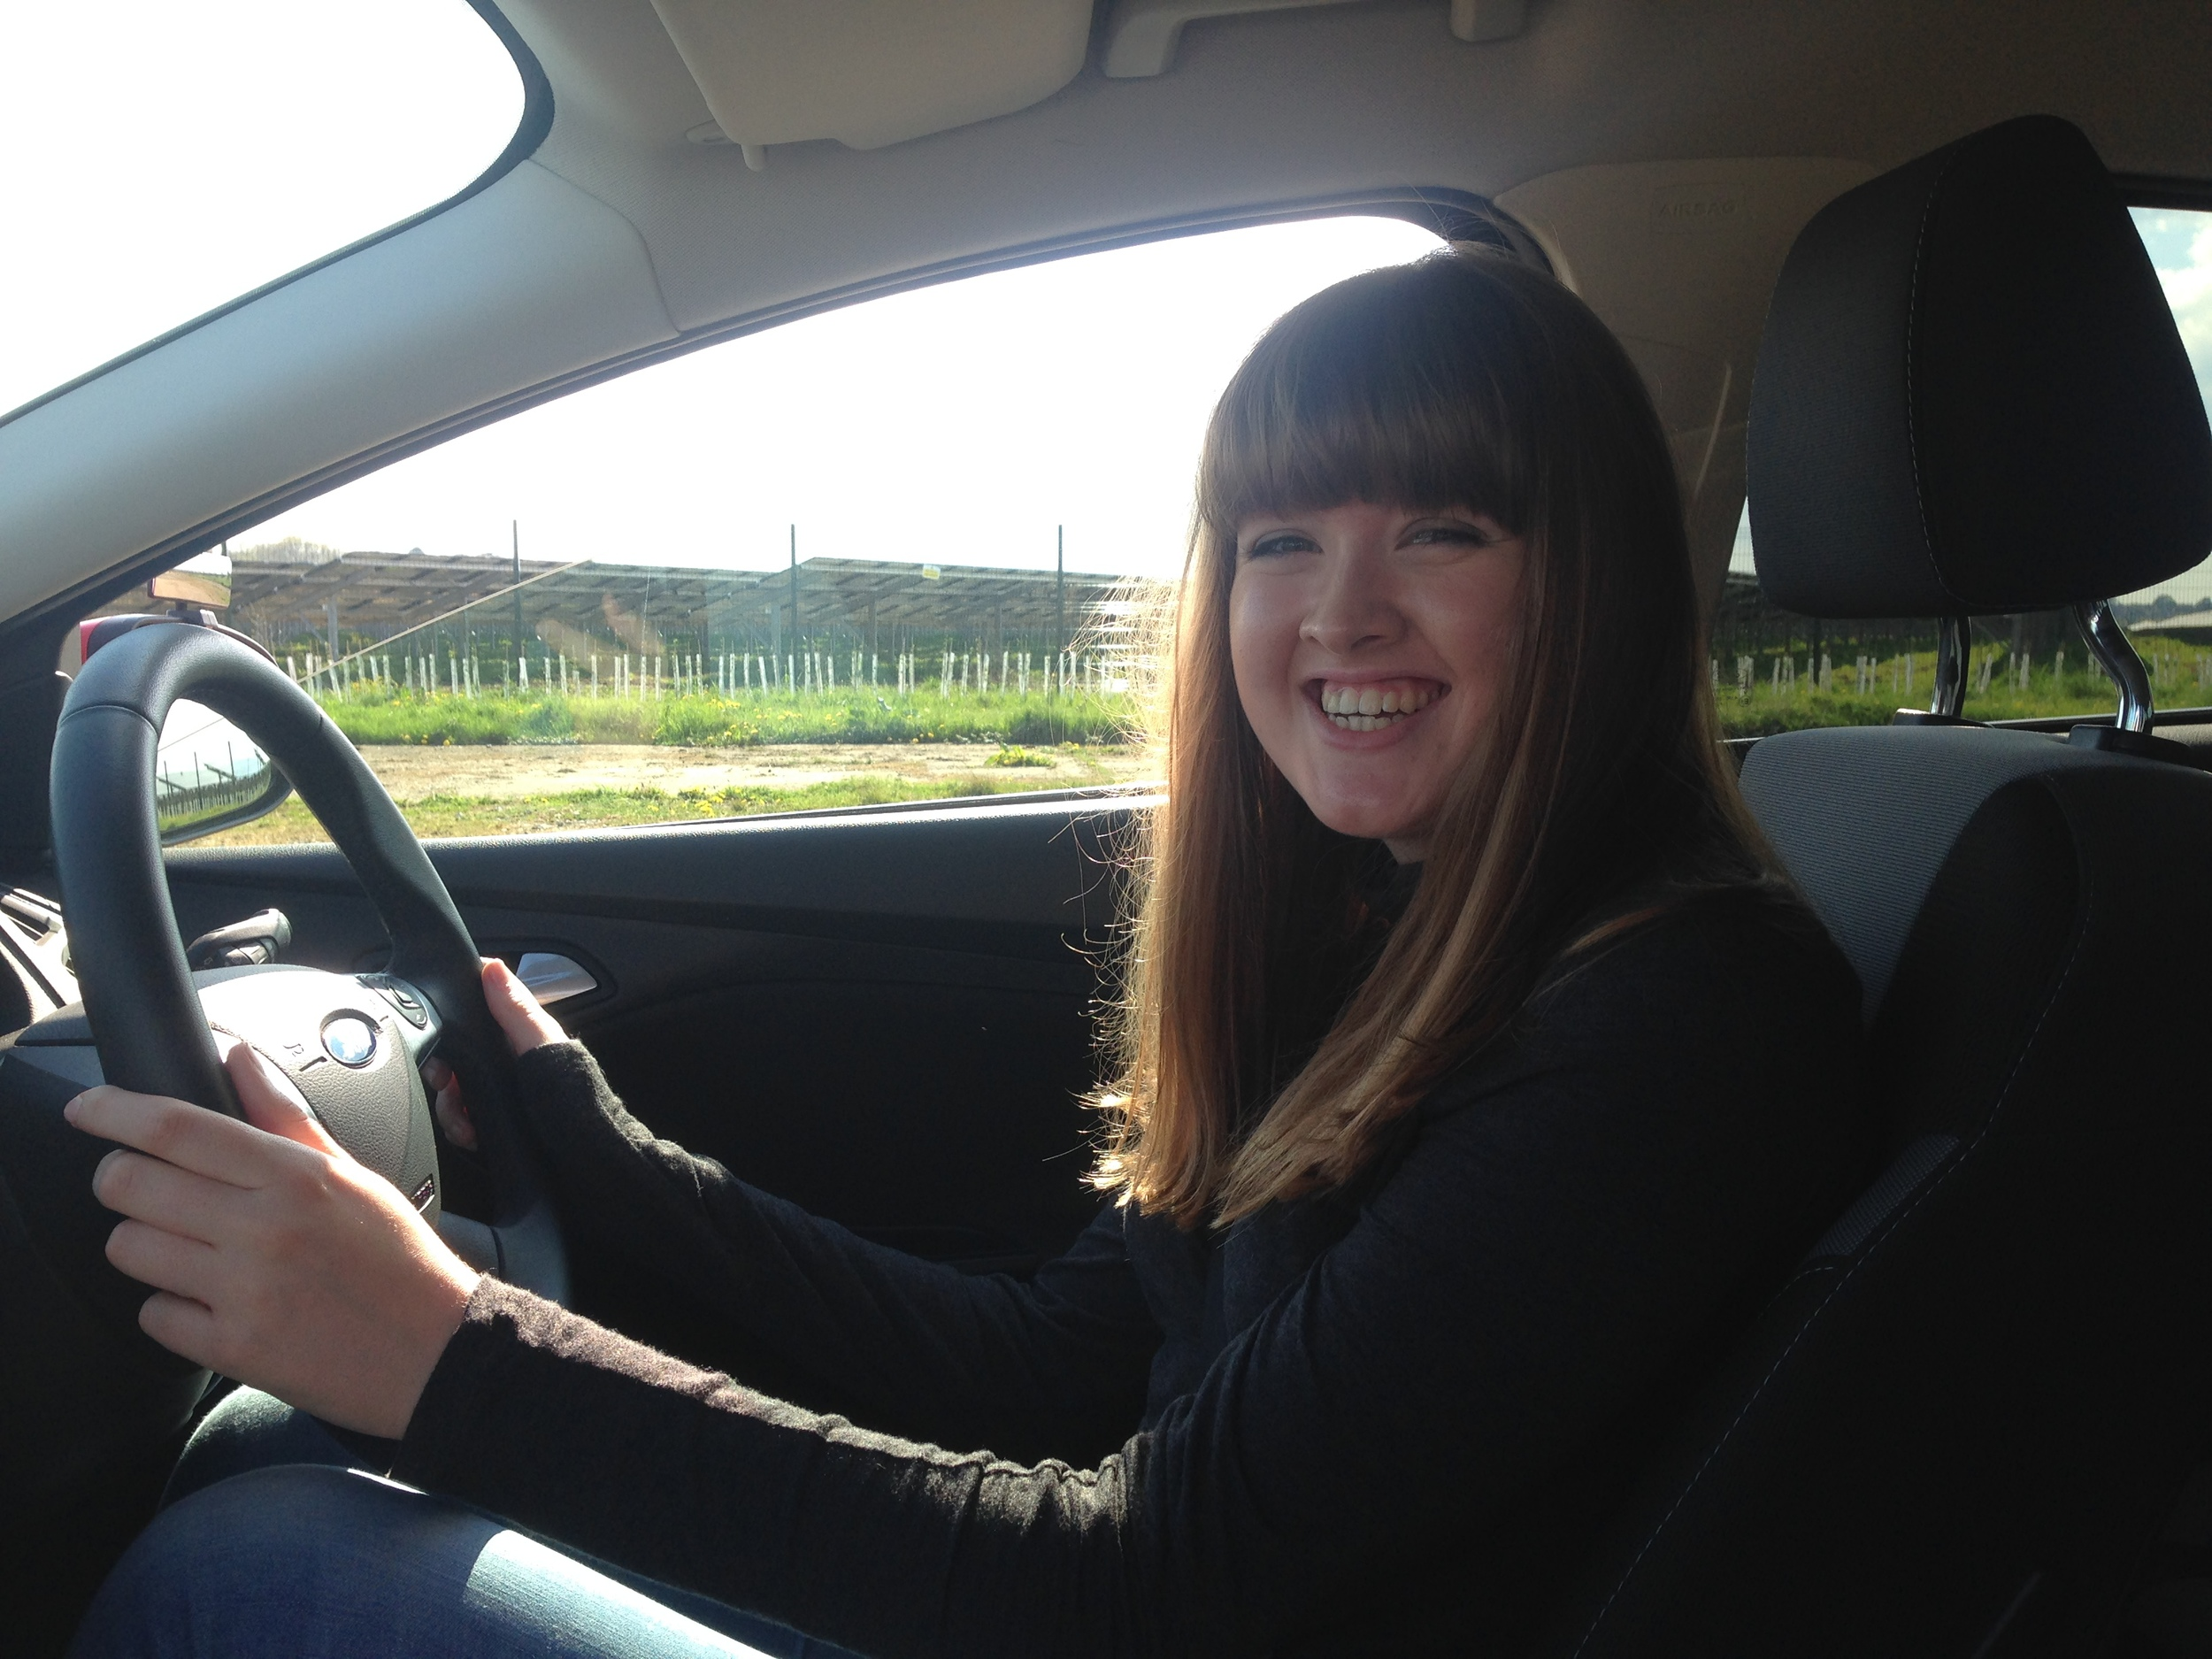 Sophie Rooney (18) Off road lesson with Mark Prewett on Sun 26th April 2015. Well done!